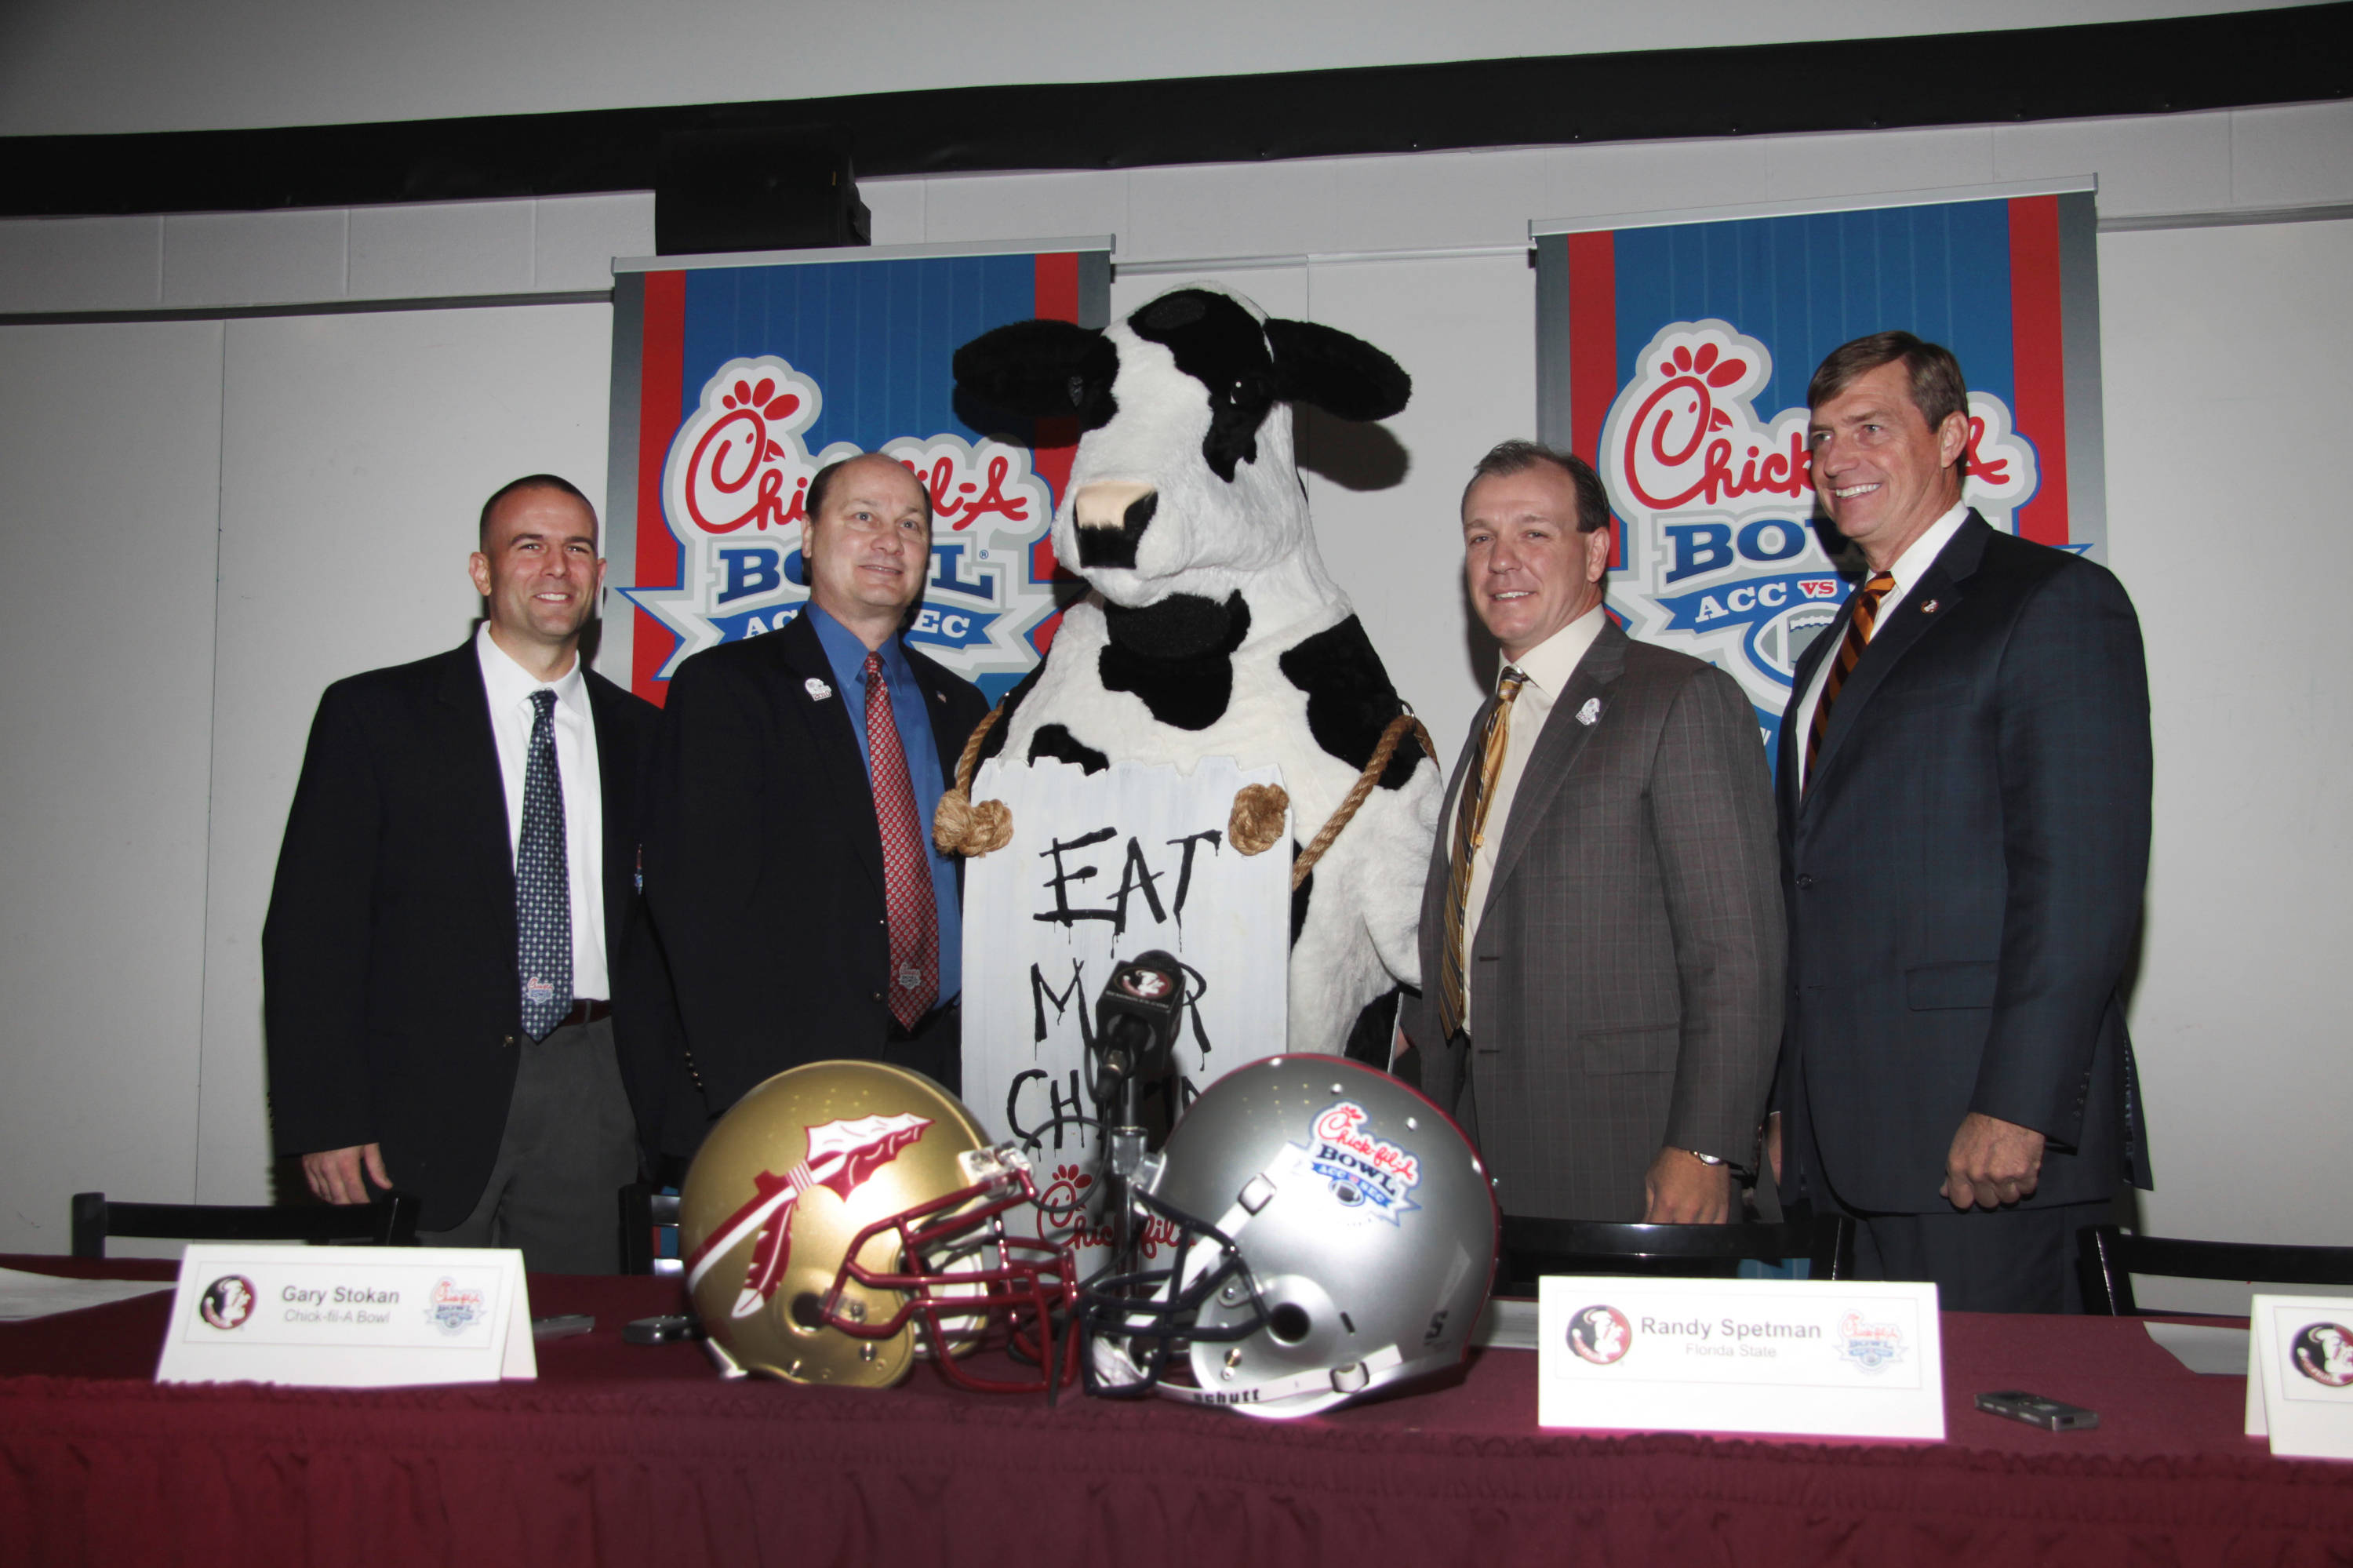 Chick-fil-A Executives, Director of Athletics Randy Spetman and Jimbo Fisher pose for a picture with the Chick-fil-A cow after Thursday's press conference.